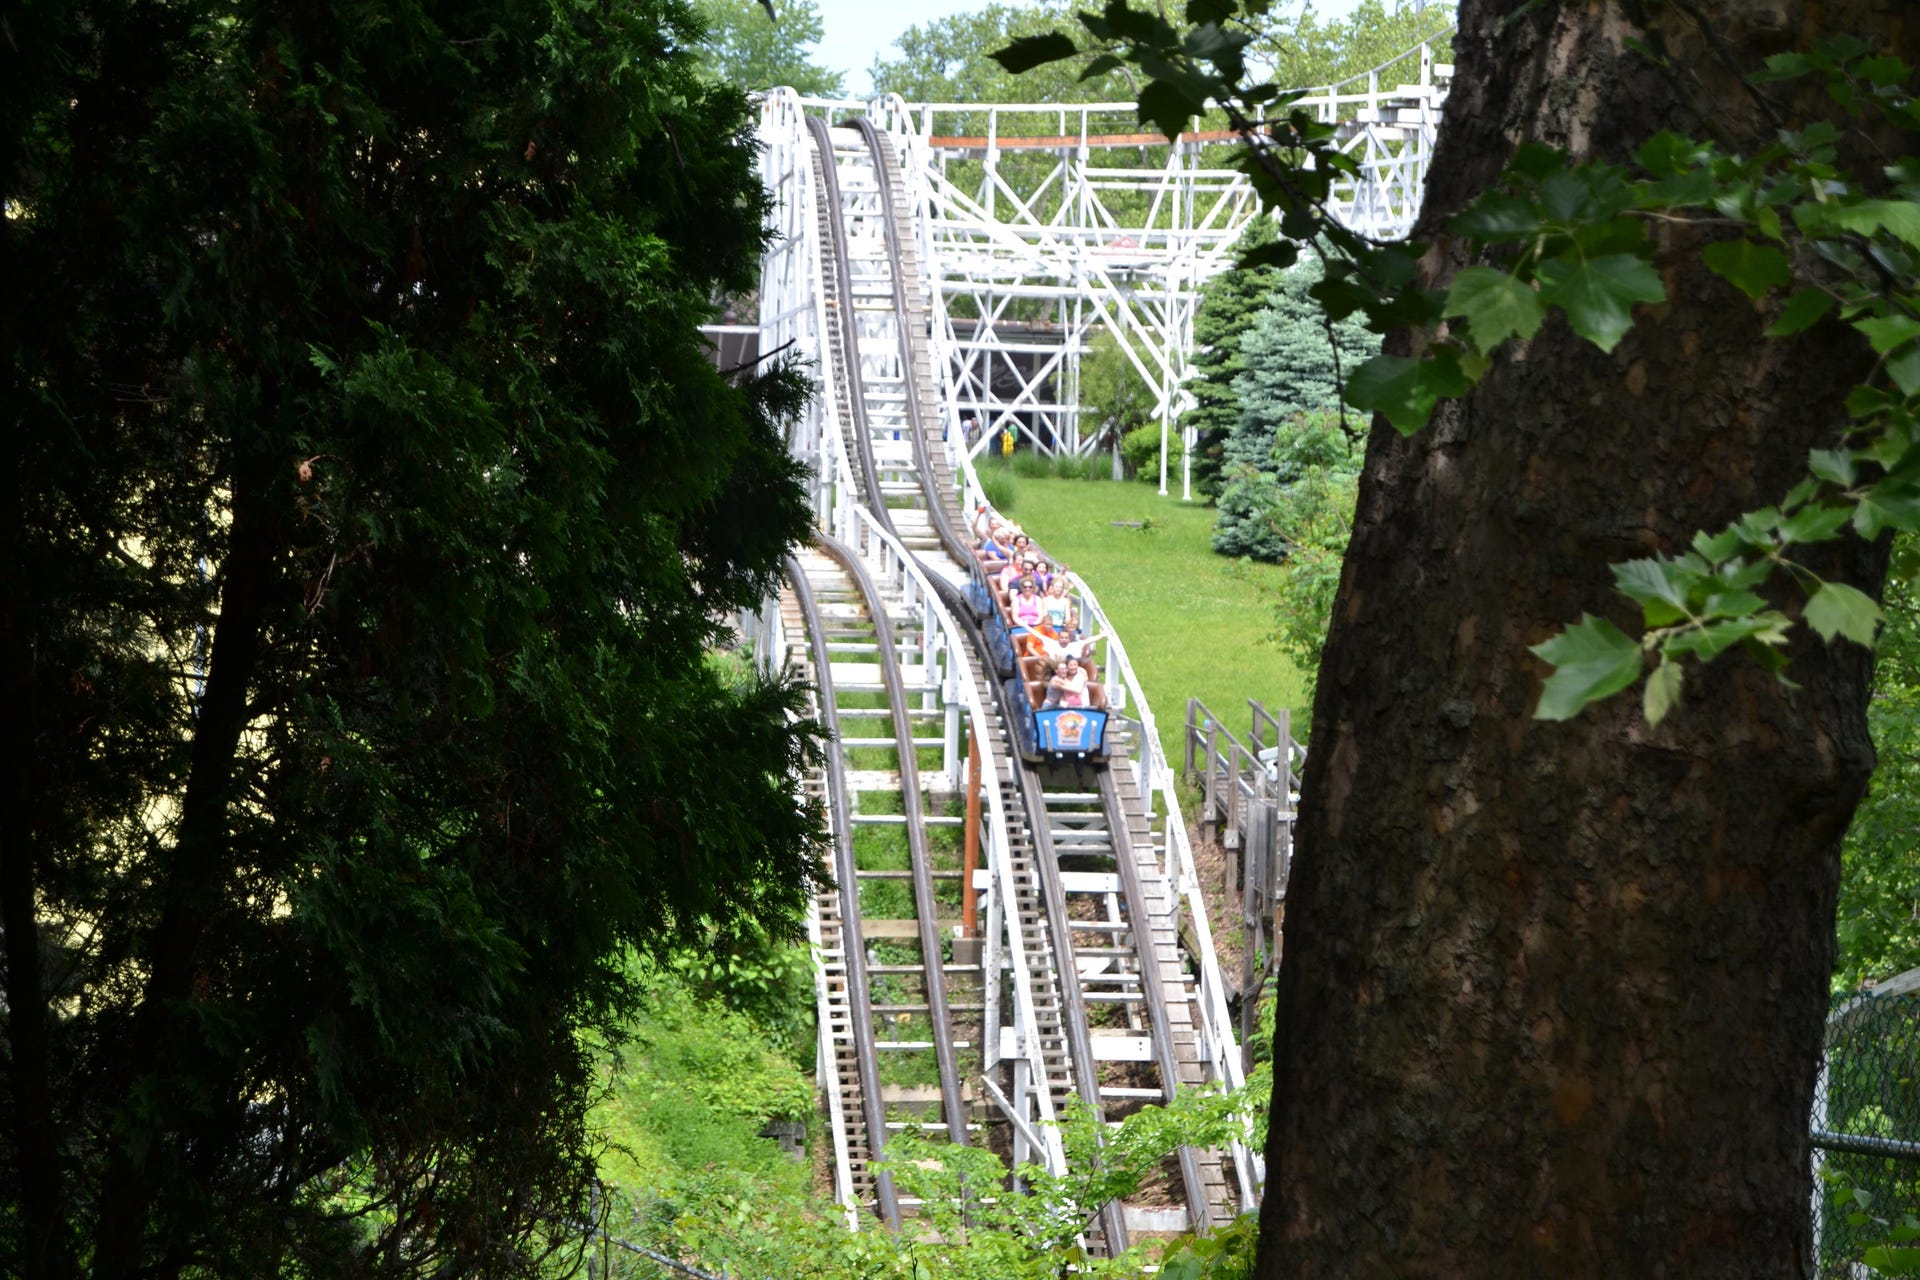 Take a ride back in time at Kennywood